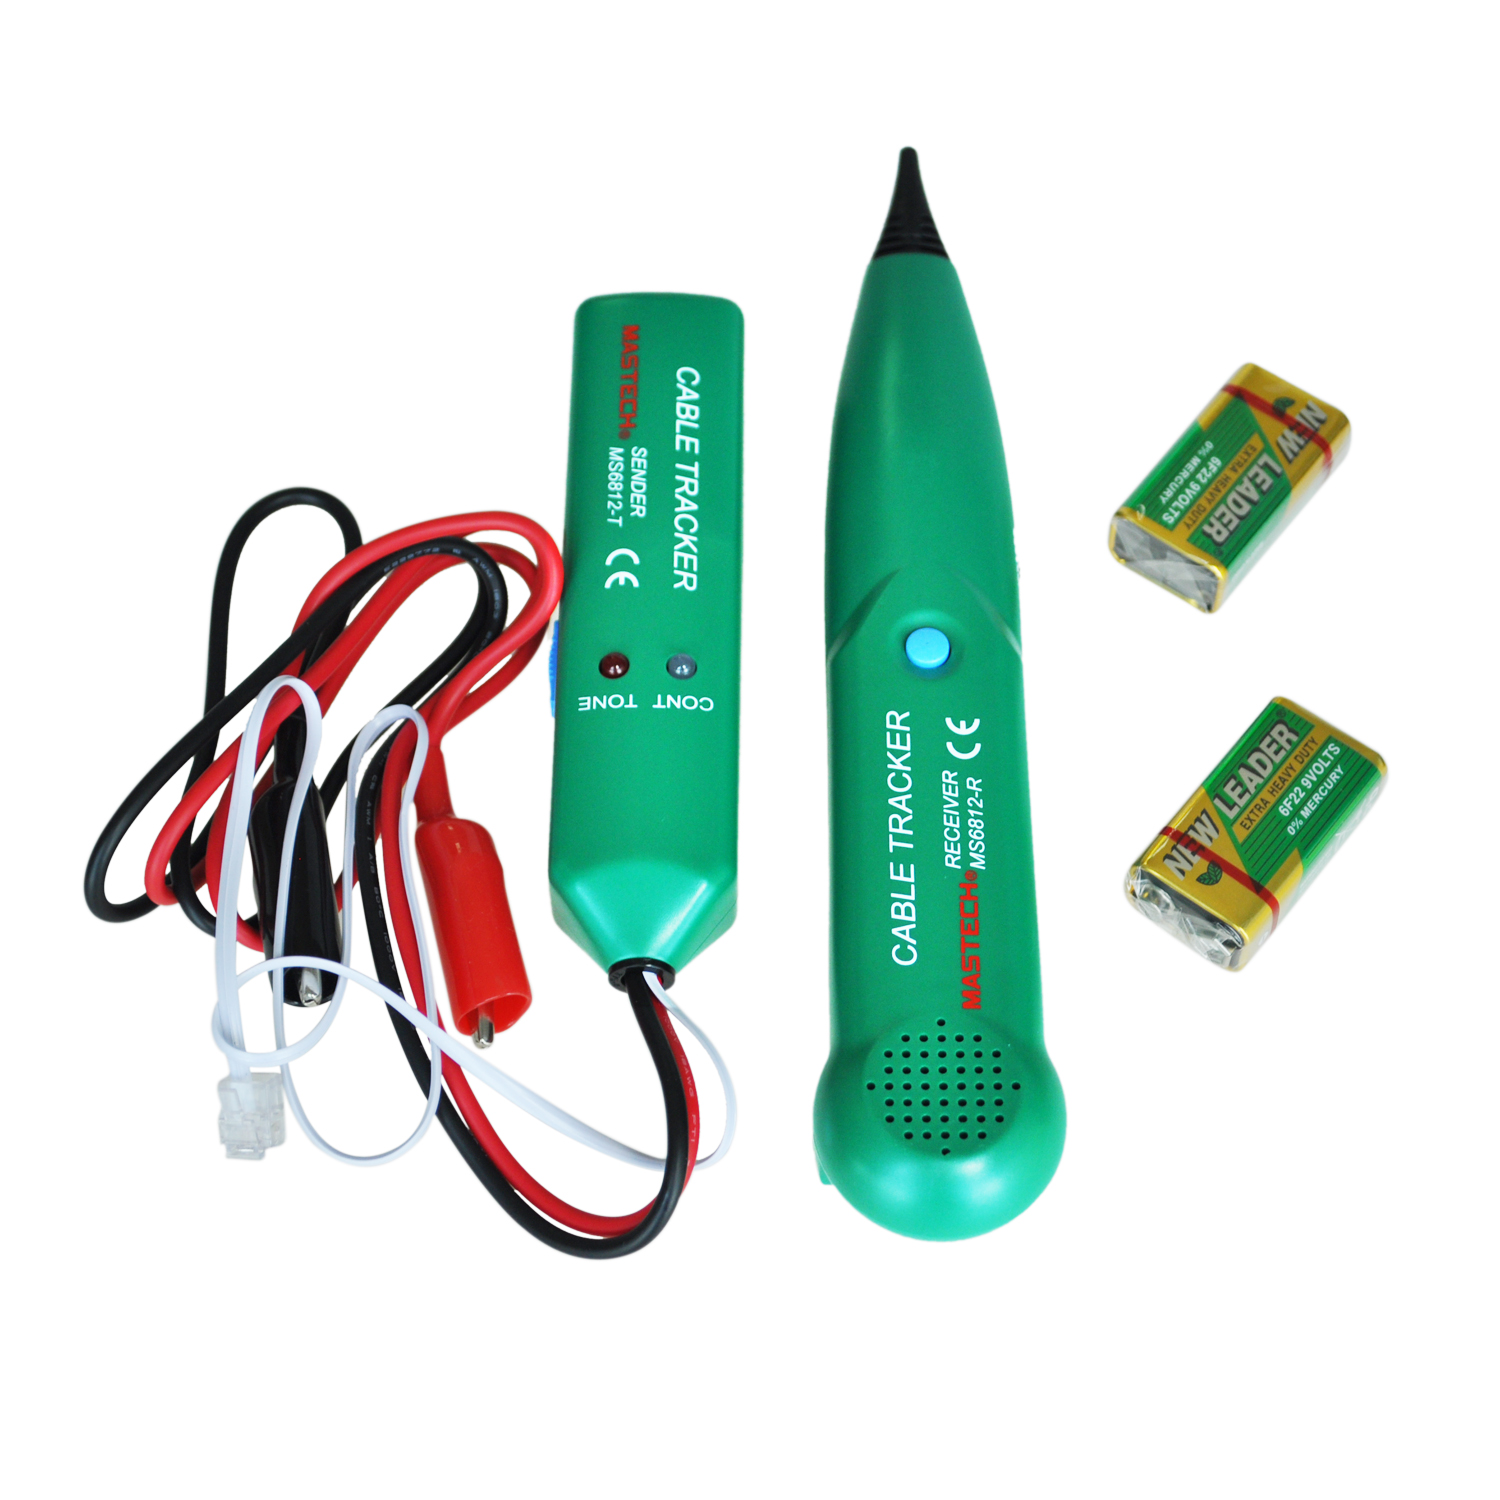 Groovy Telephone Phone Network Rj Cable Wire Line Tone Tracer Tracker Wiring Cloud Hisonuggs Outletorg